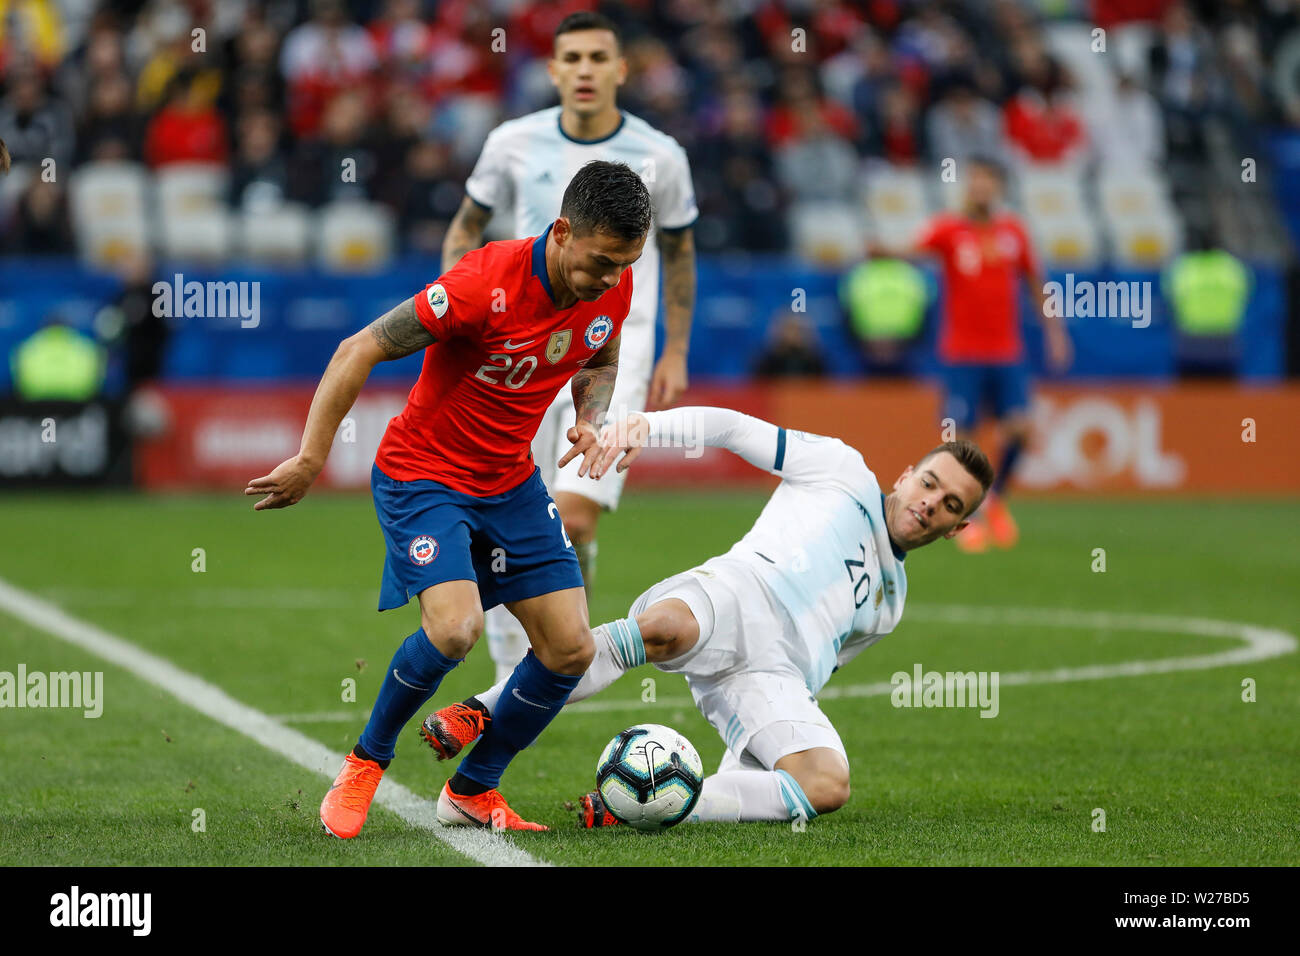 SÃO PAULO, SP - 06.07.2019: ARGENTINA VS. CHILE - Lo Celso is missing in Aránguiz, Arbitrator Mario Diaz de Vivar (Paraguay) is awarded the VAR and a penalty mark for Chile during a match between Argentina and Chile, valid for the third place match of the Copa América 2019, held this Saturday (06) in Arena Corinthians in São Paulo, SP. (Photo: Ricardo Moreira/Fotoarena) - Stock Image